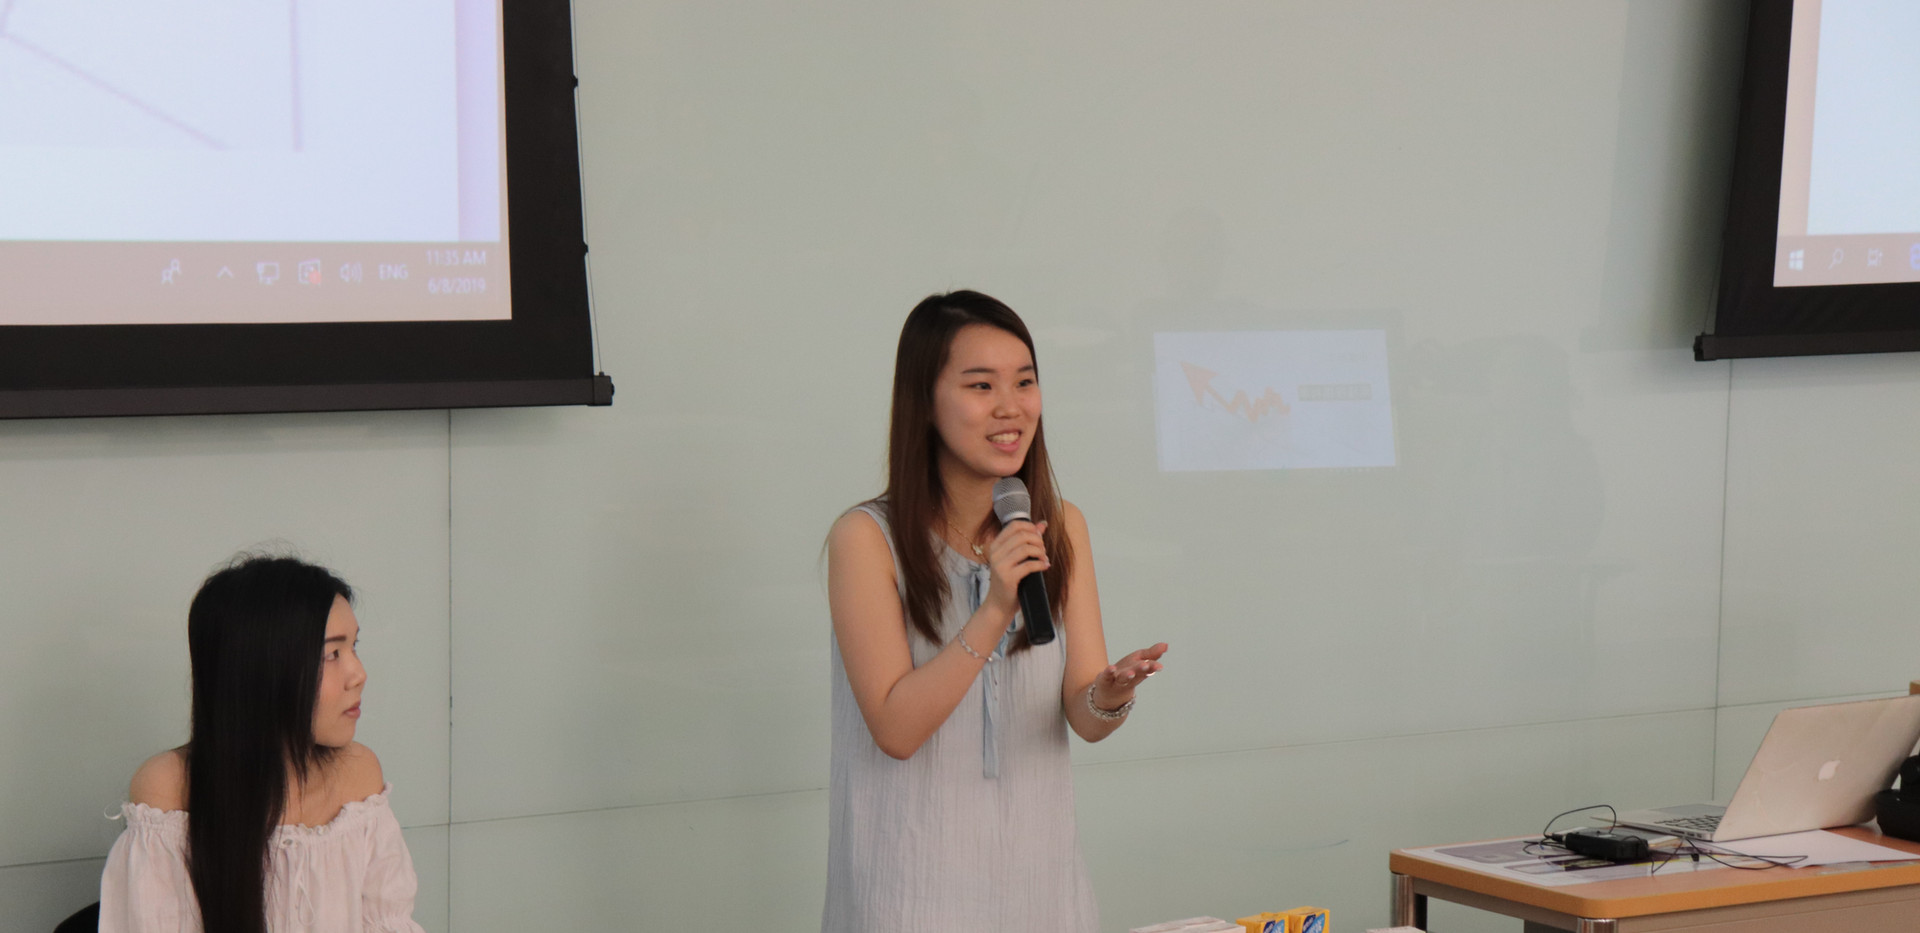 """[Legal talks] """"Outreach Legal Talks Initiative"""" (HKU OUTLET)'s first legal talk for""""Senior Champions"""" and their friends (June 8th, 2019)"""